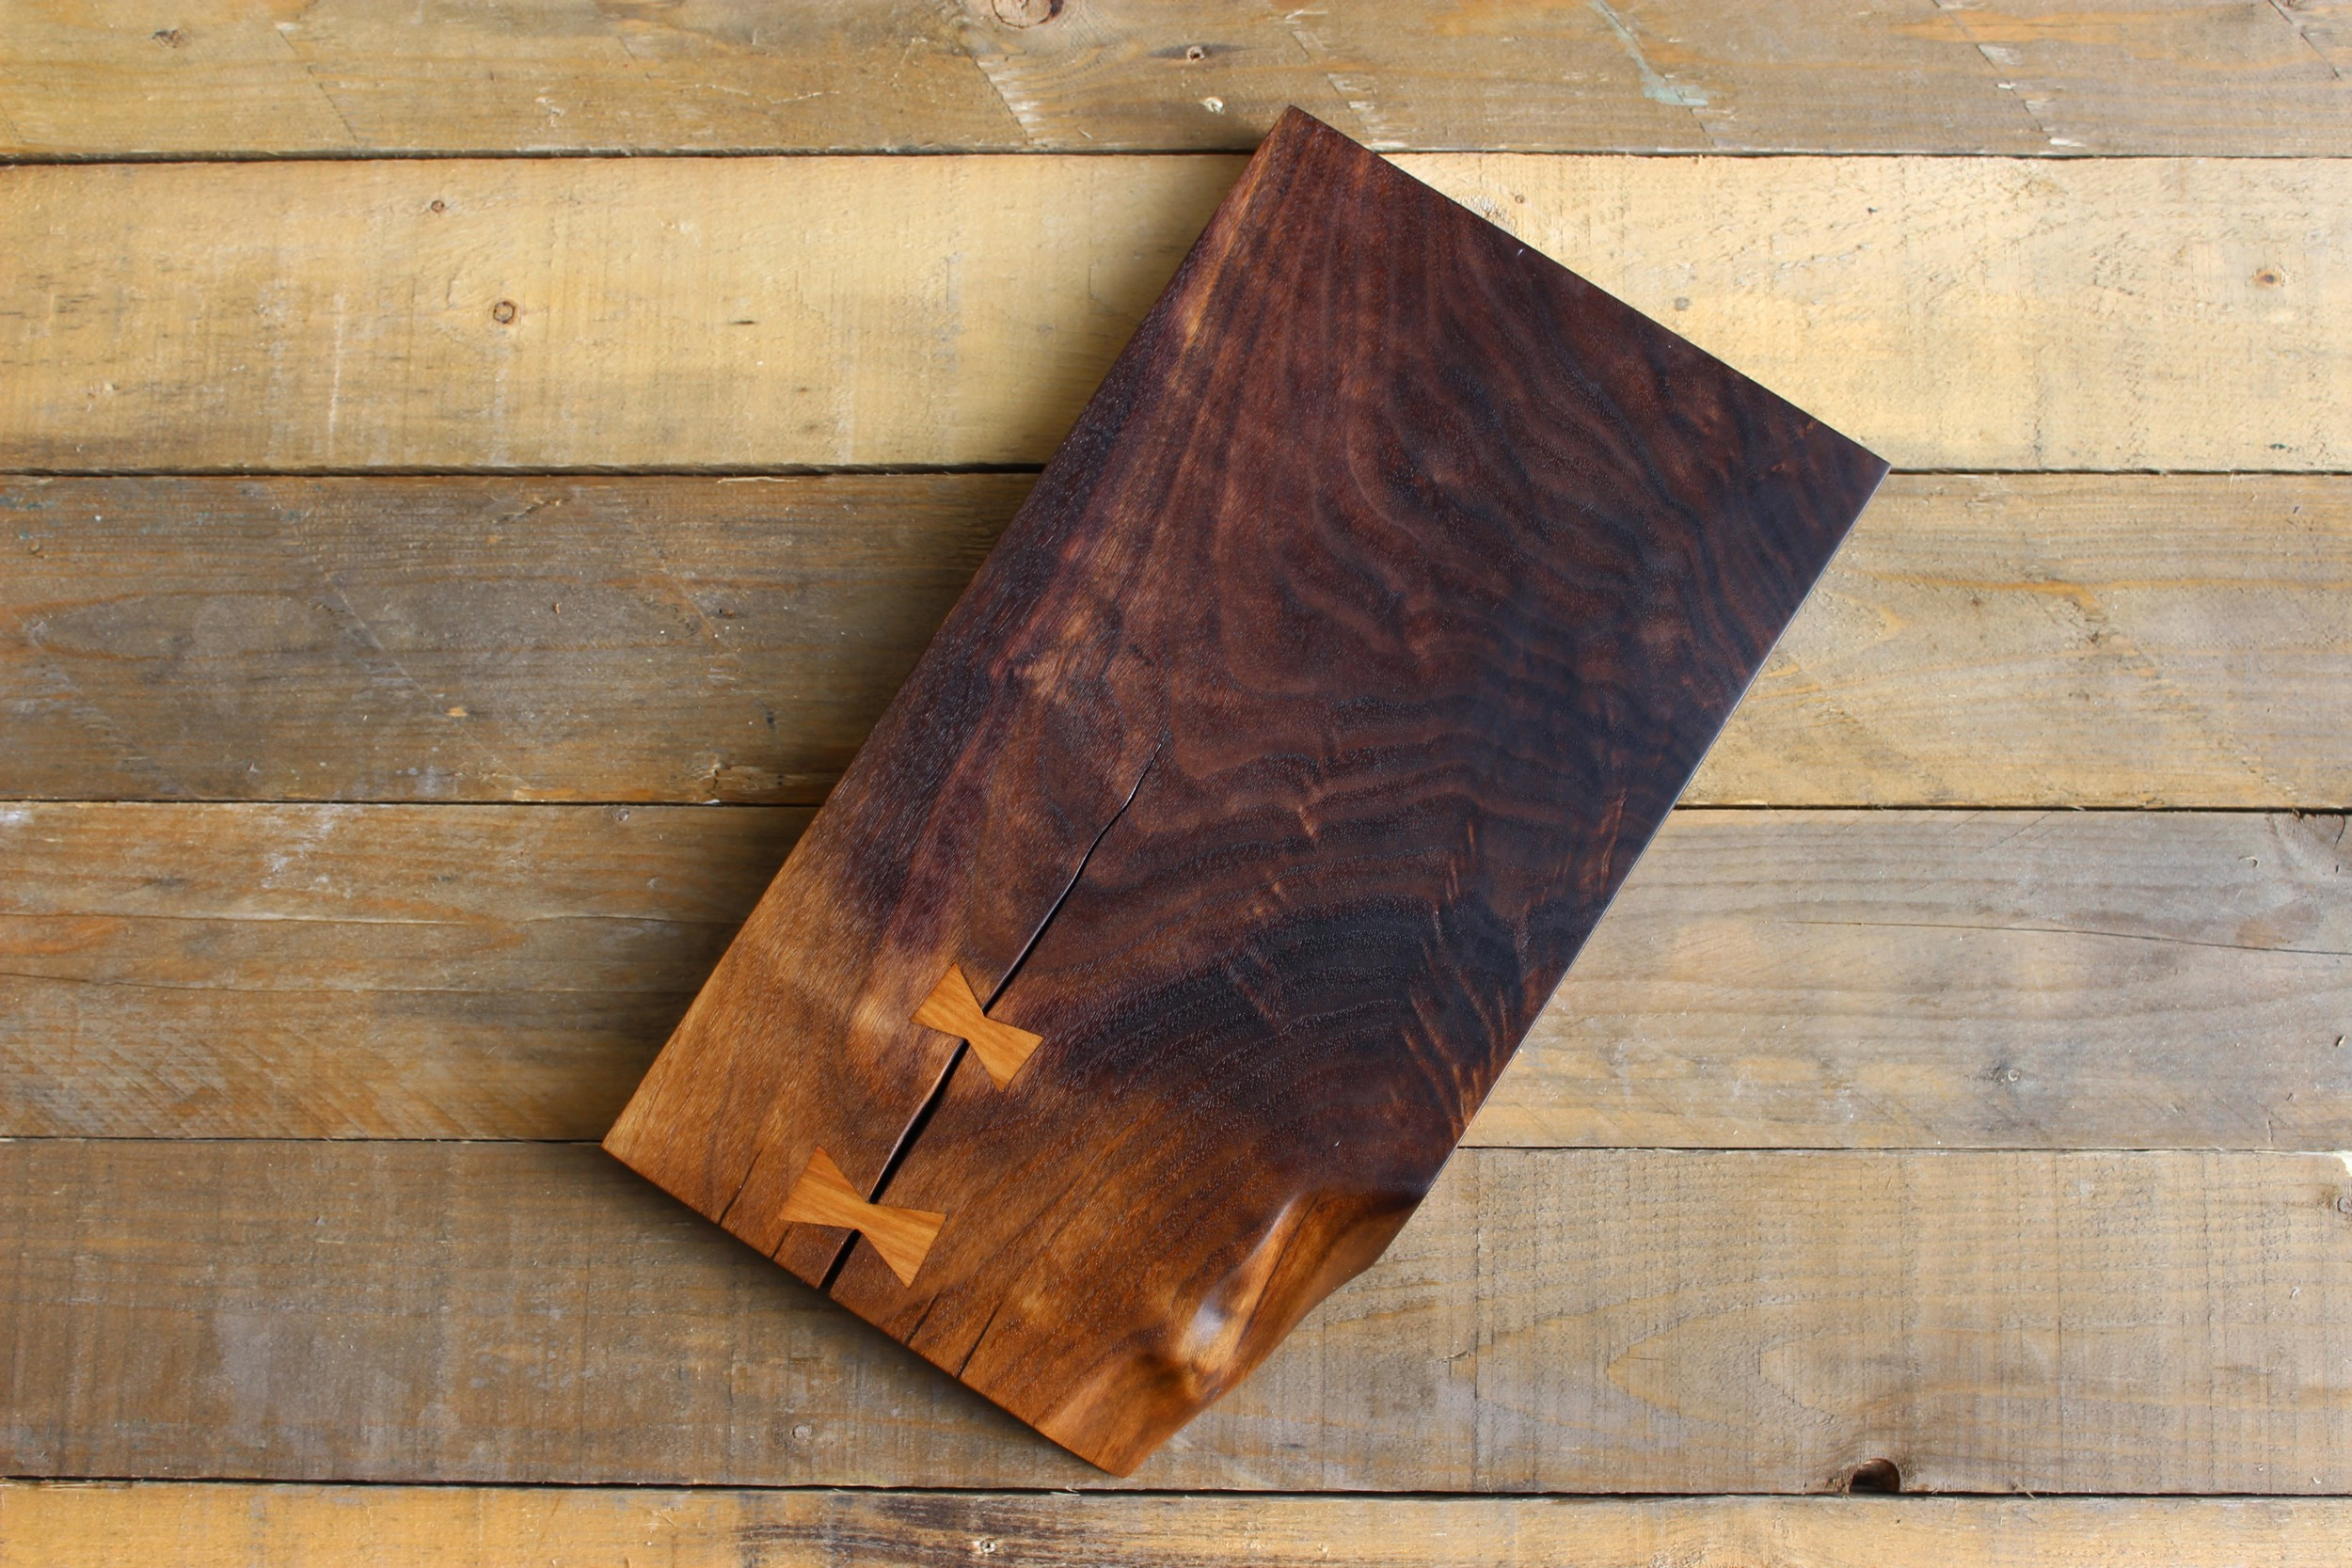 Crotch Walnut serving board with Cherry Bowtie